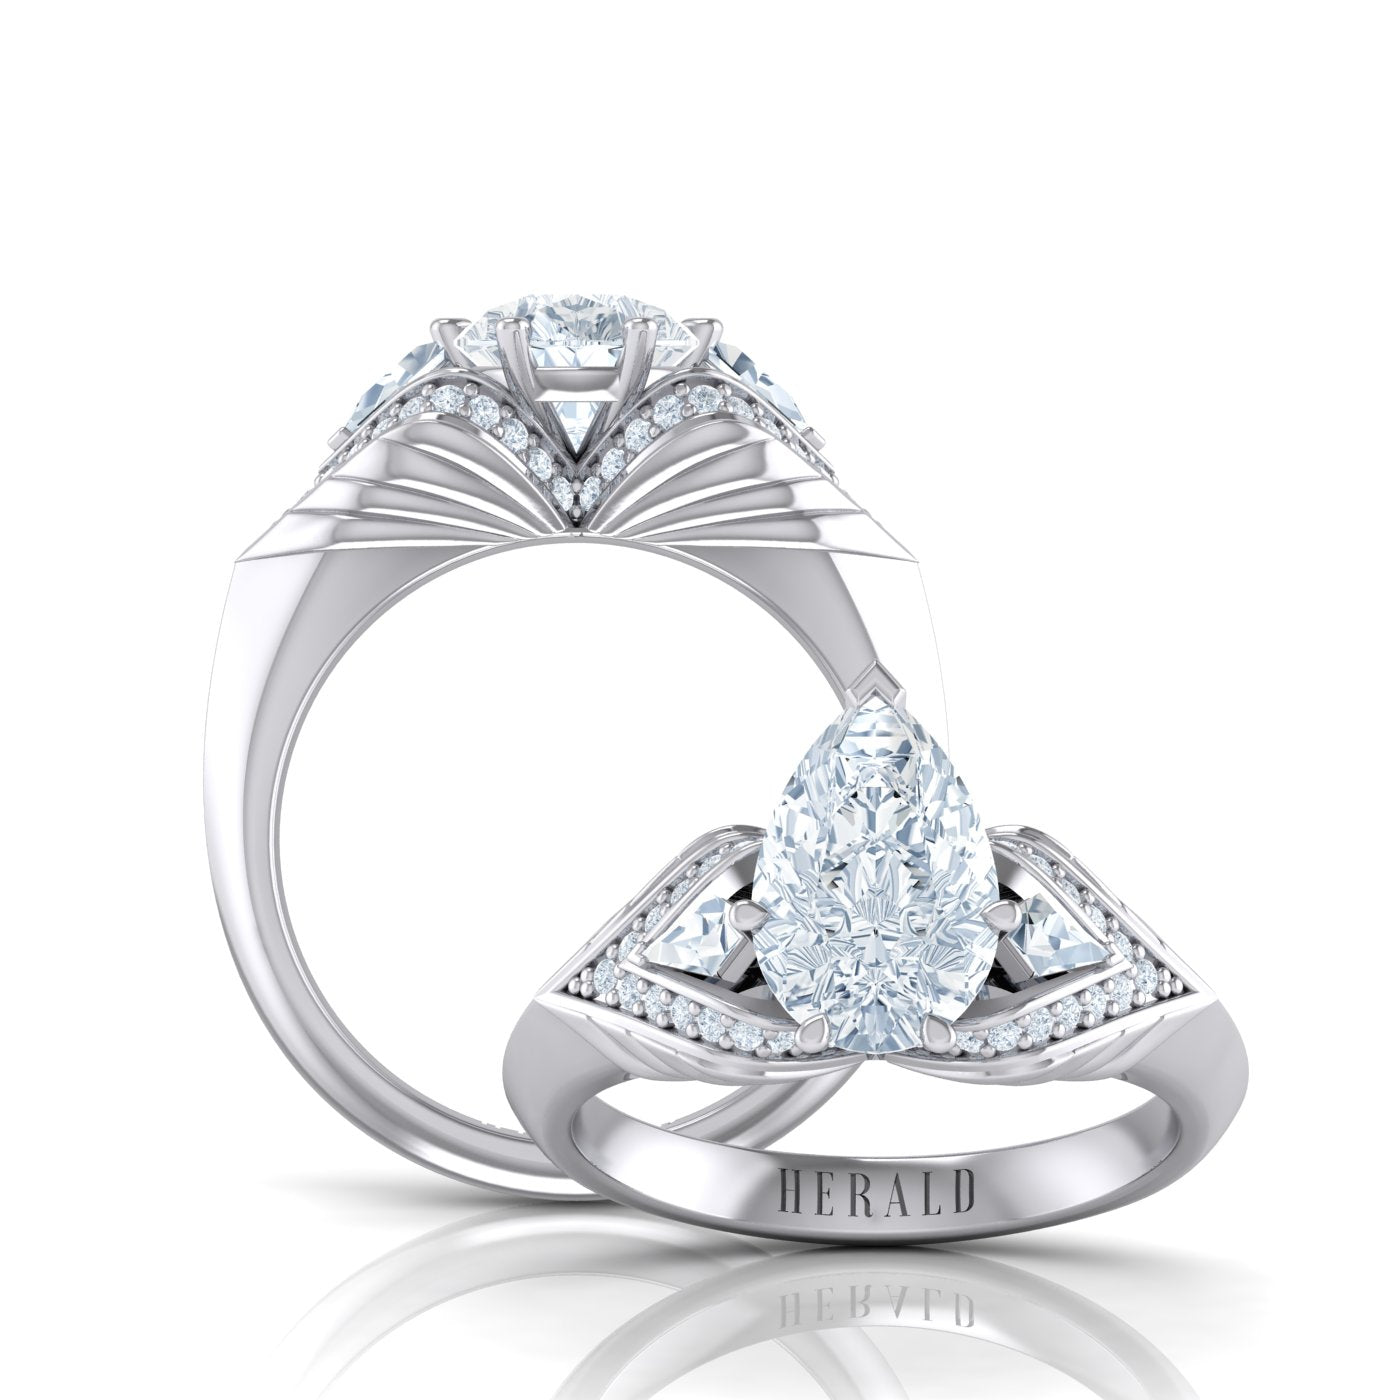 Alice Herald Platinum Pear Diamond Ring